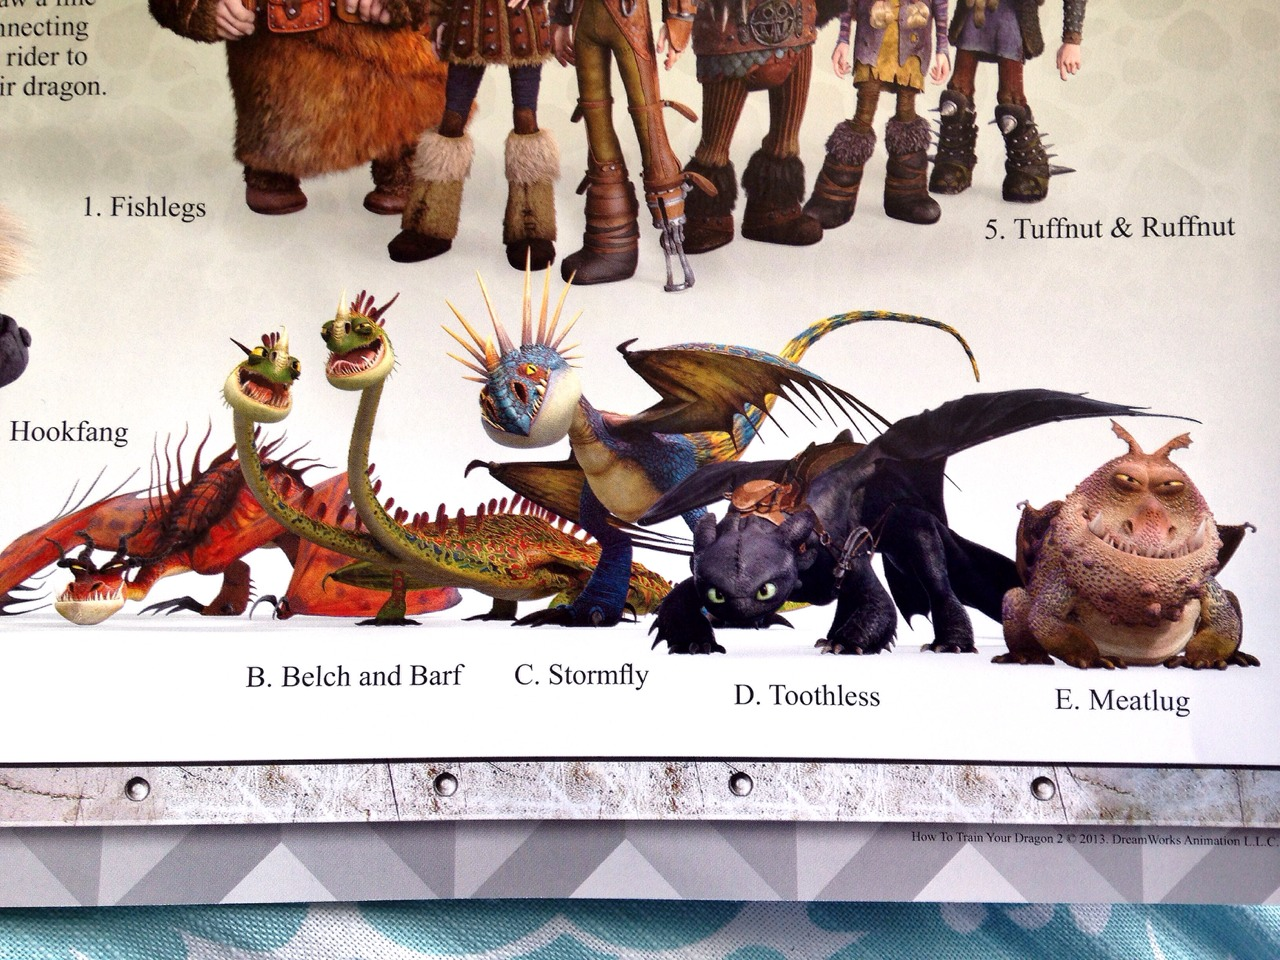 How To Train Your Dragon 2 Characters (Dragons)